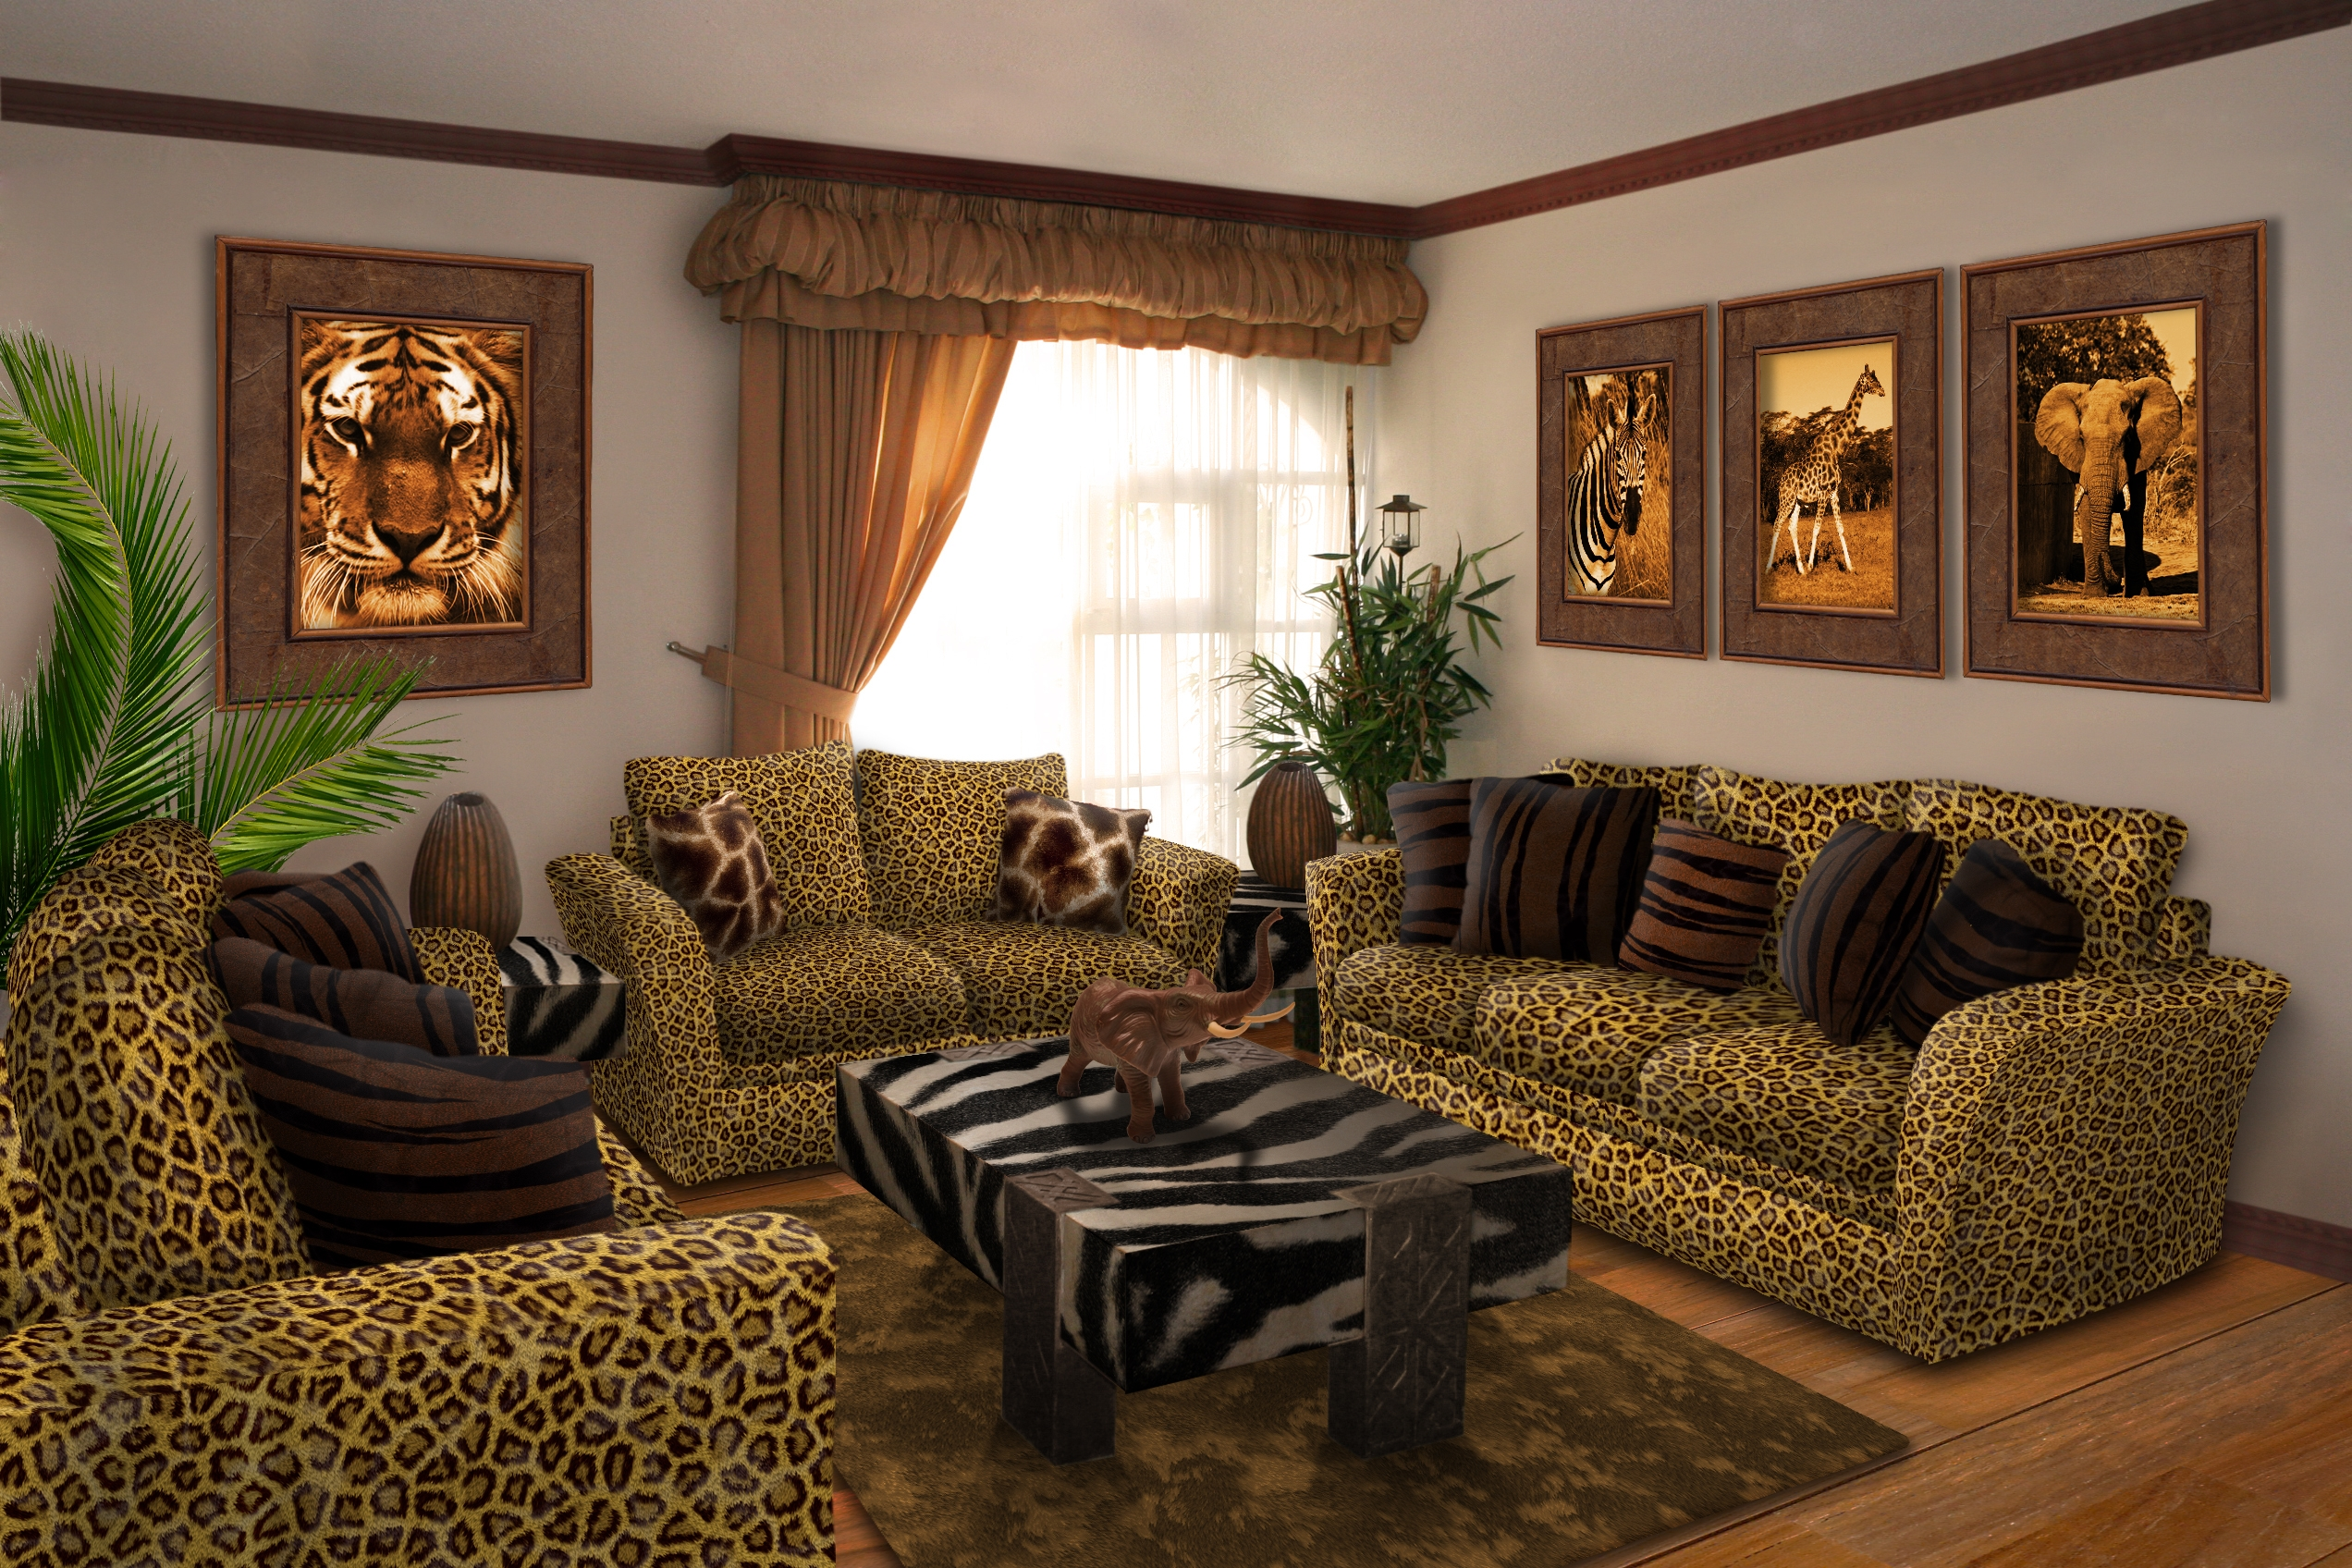 Safari living room picture by andrej2249 for interior for African house decoration